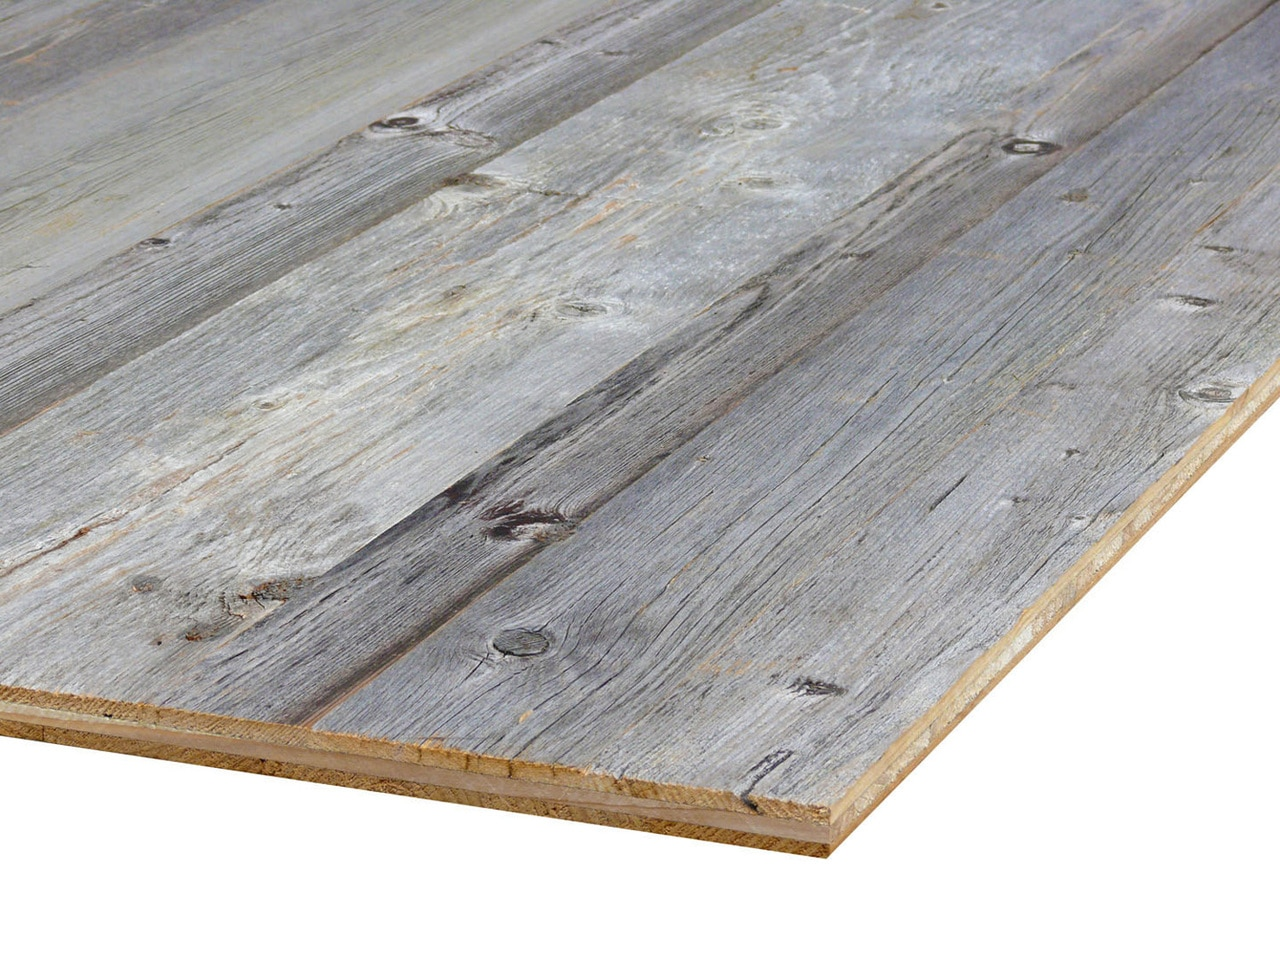 Reclaimed wood Rustic faced  Panels Innsbruck 8'x 4` 2440 x 1220  x 20mm for Furniture & Cladding per Pack